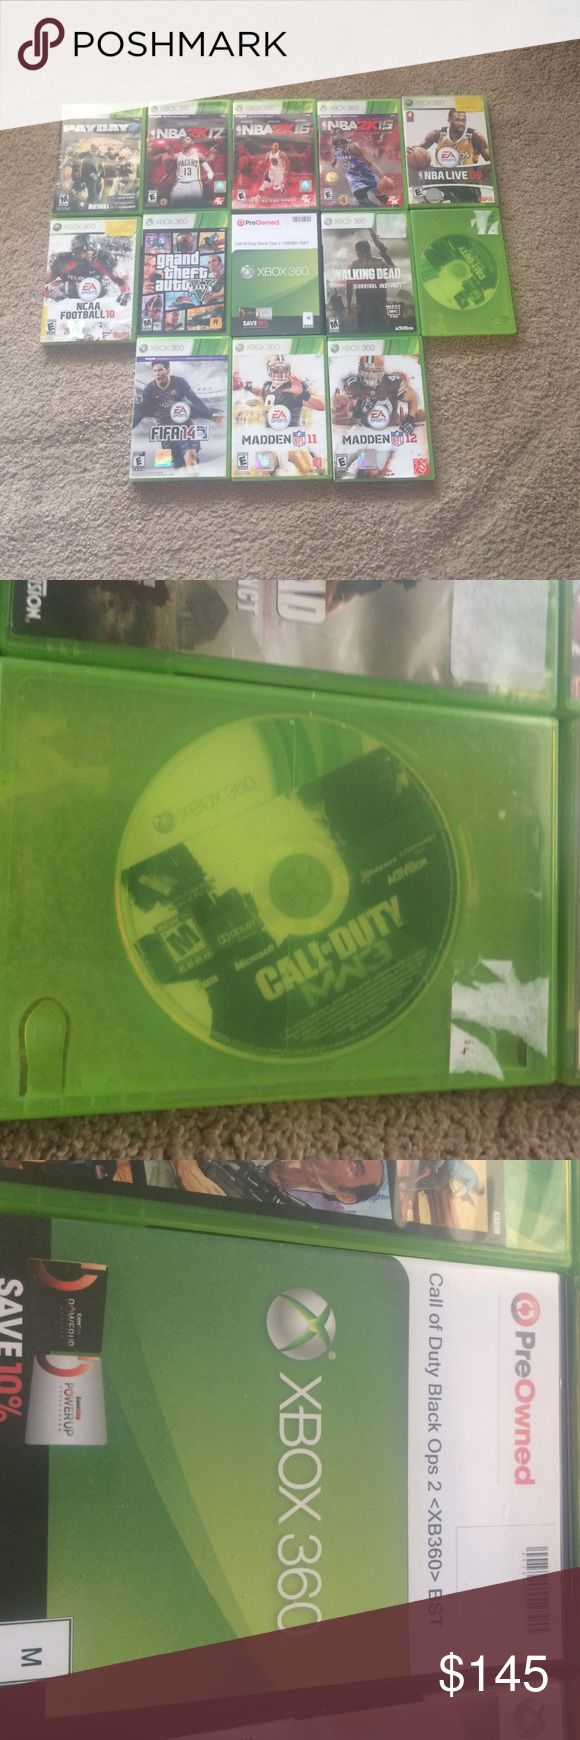 Xbox 360 games Excellent condition, payday 2, nba2k17, NBA2k16, NBA2k15, NBAlive08, NCAA football 10, GTA 5, bo2, walking dead, mw3, FIFA 14, madden 11, madden 12. I'm asking $145, but I will take $12 for each game xbox 360  Accessories